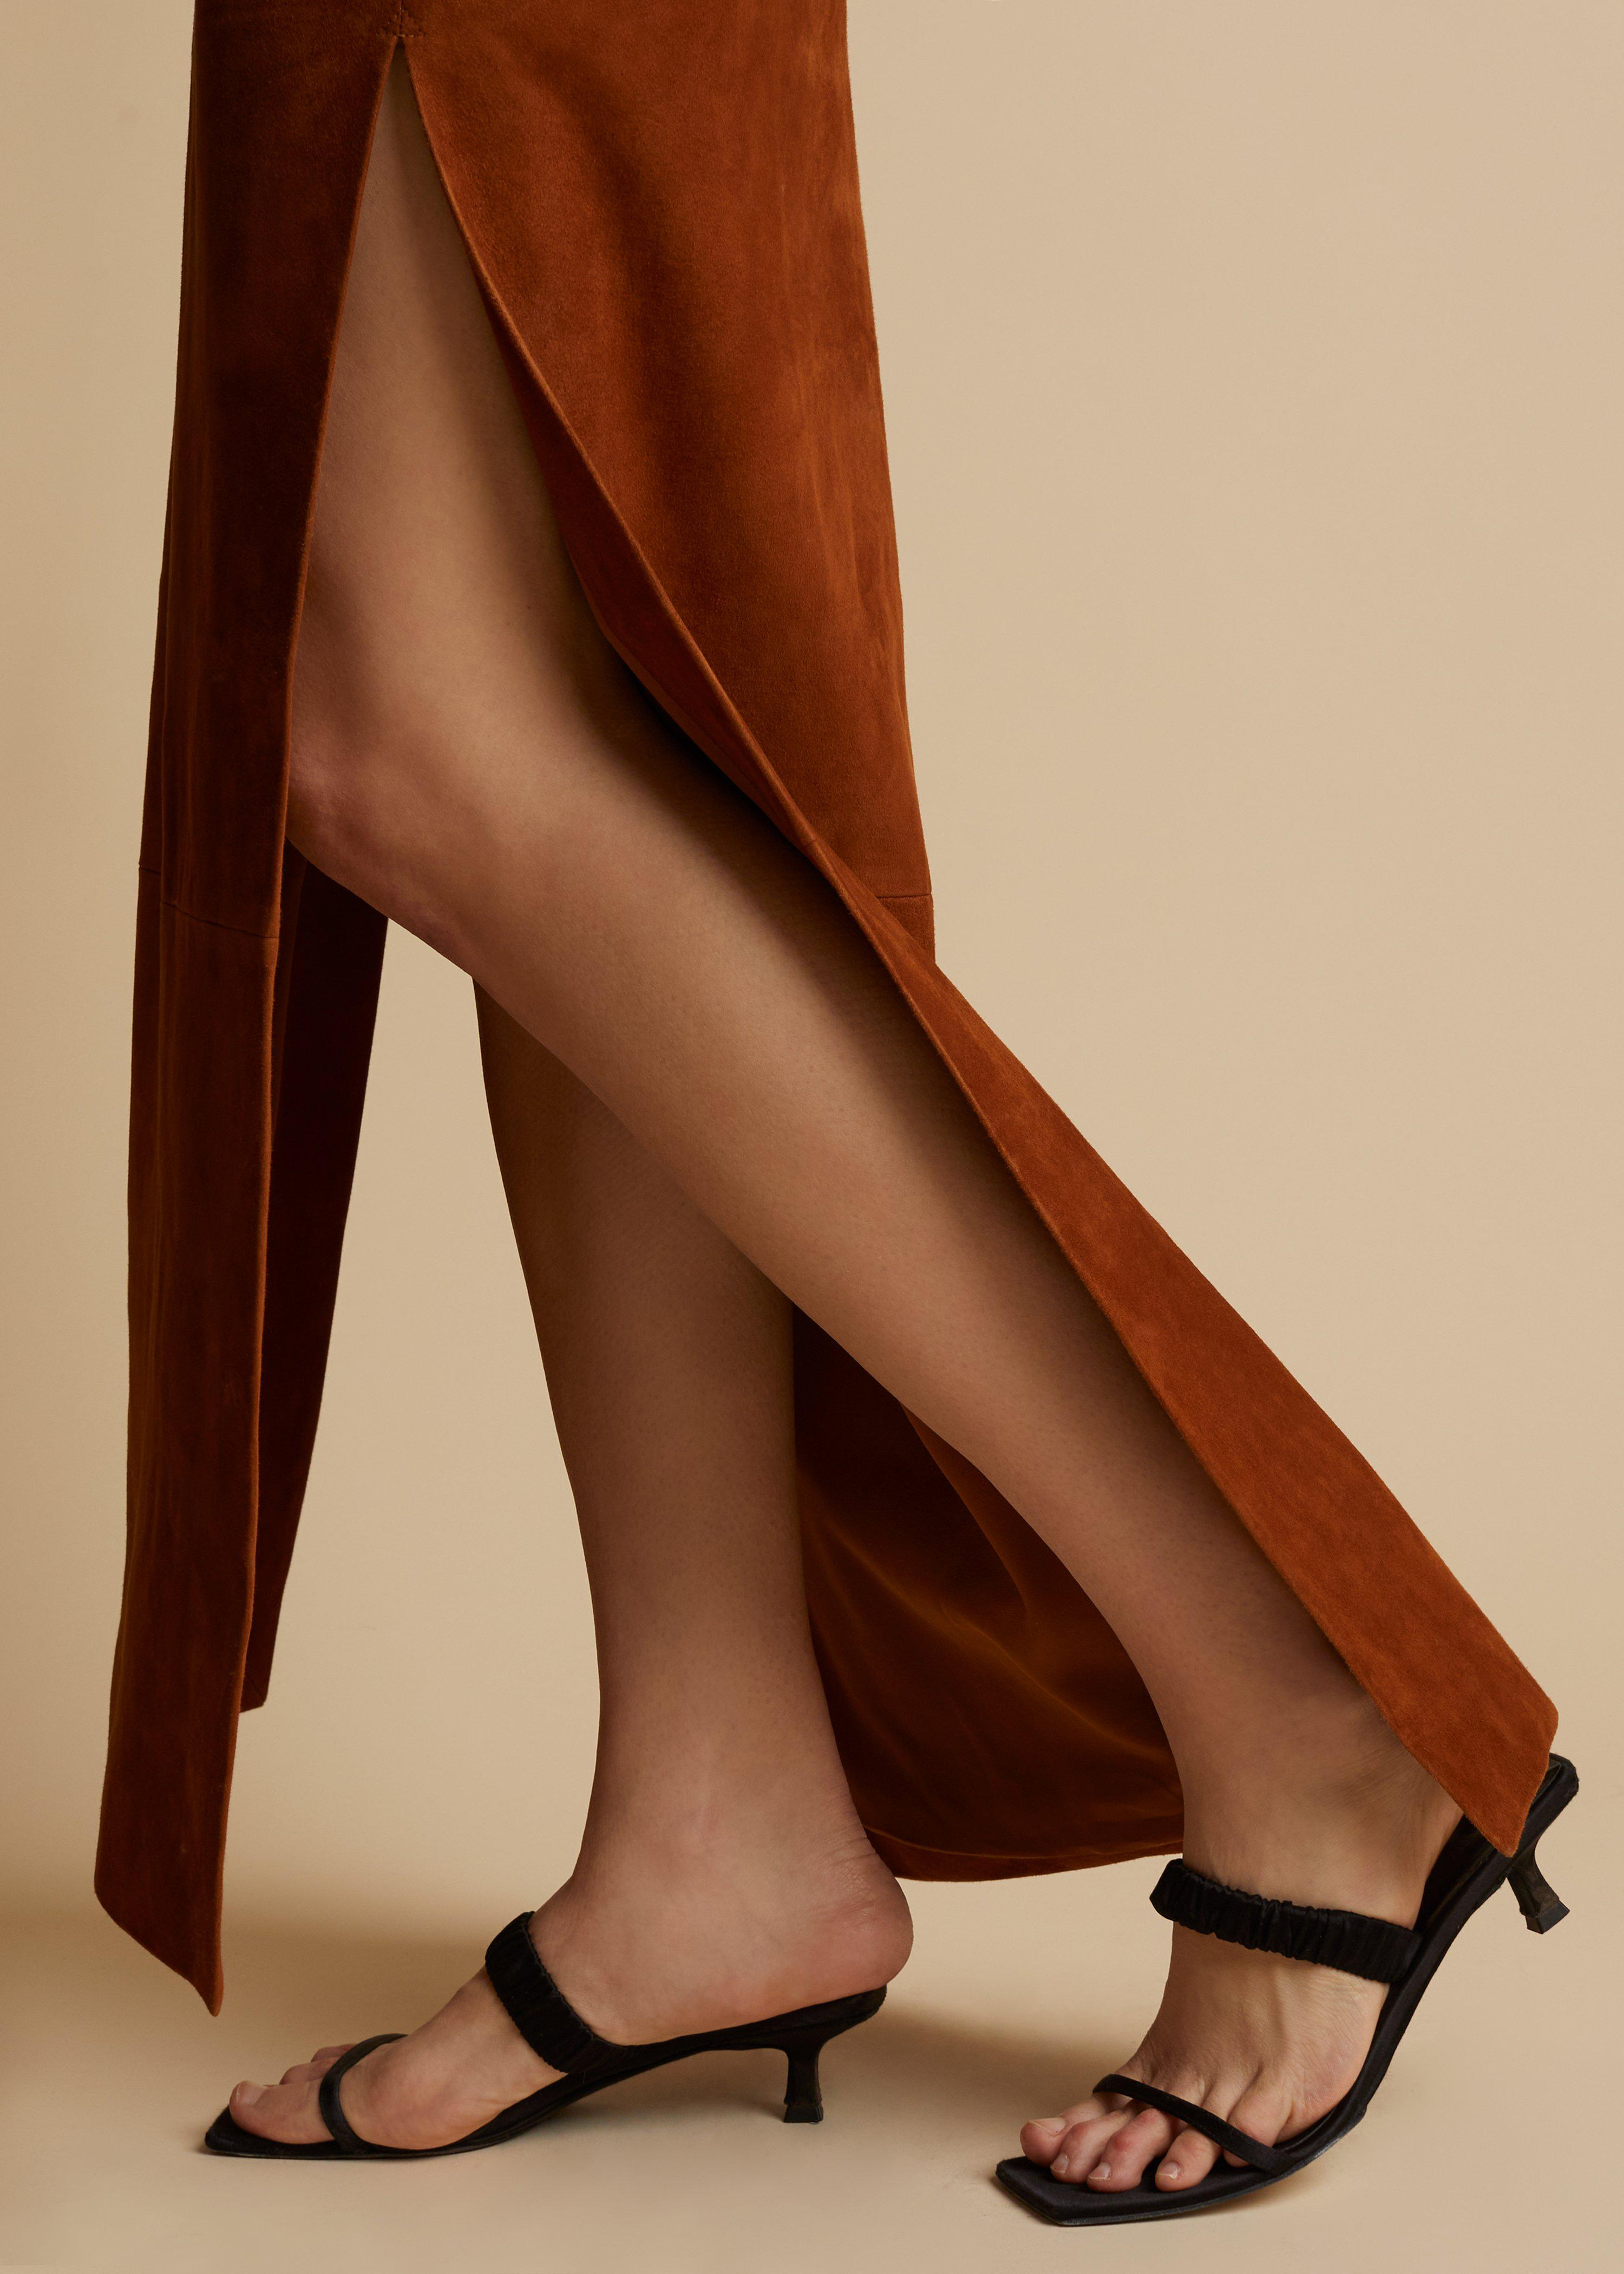 The Myla Skirt in Chestnut Suede 2